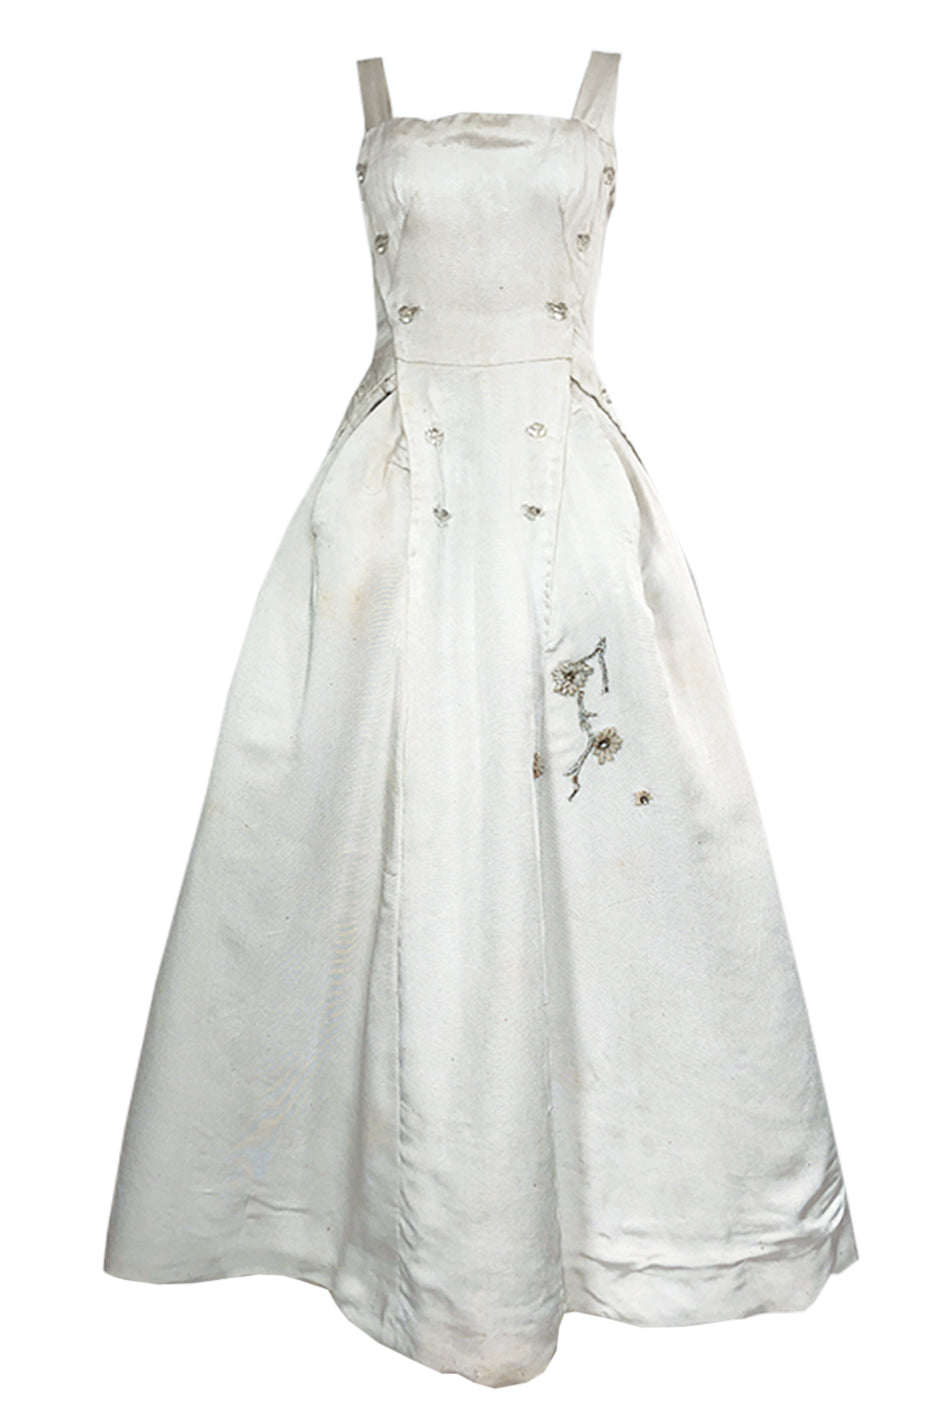 096aaf353cc Fall 1952 Christian Dior Haute Couture Ivory Silk Button Dress w Underskirts